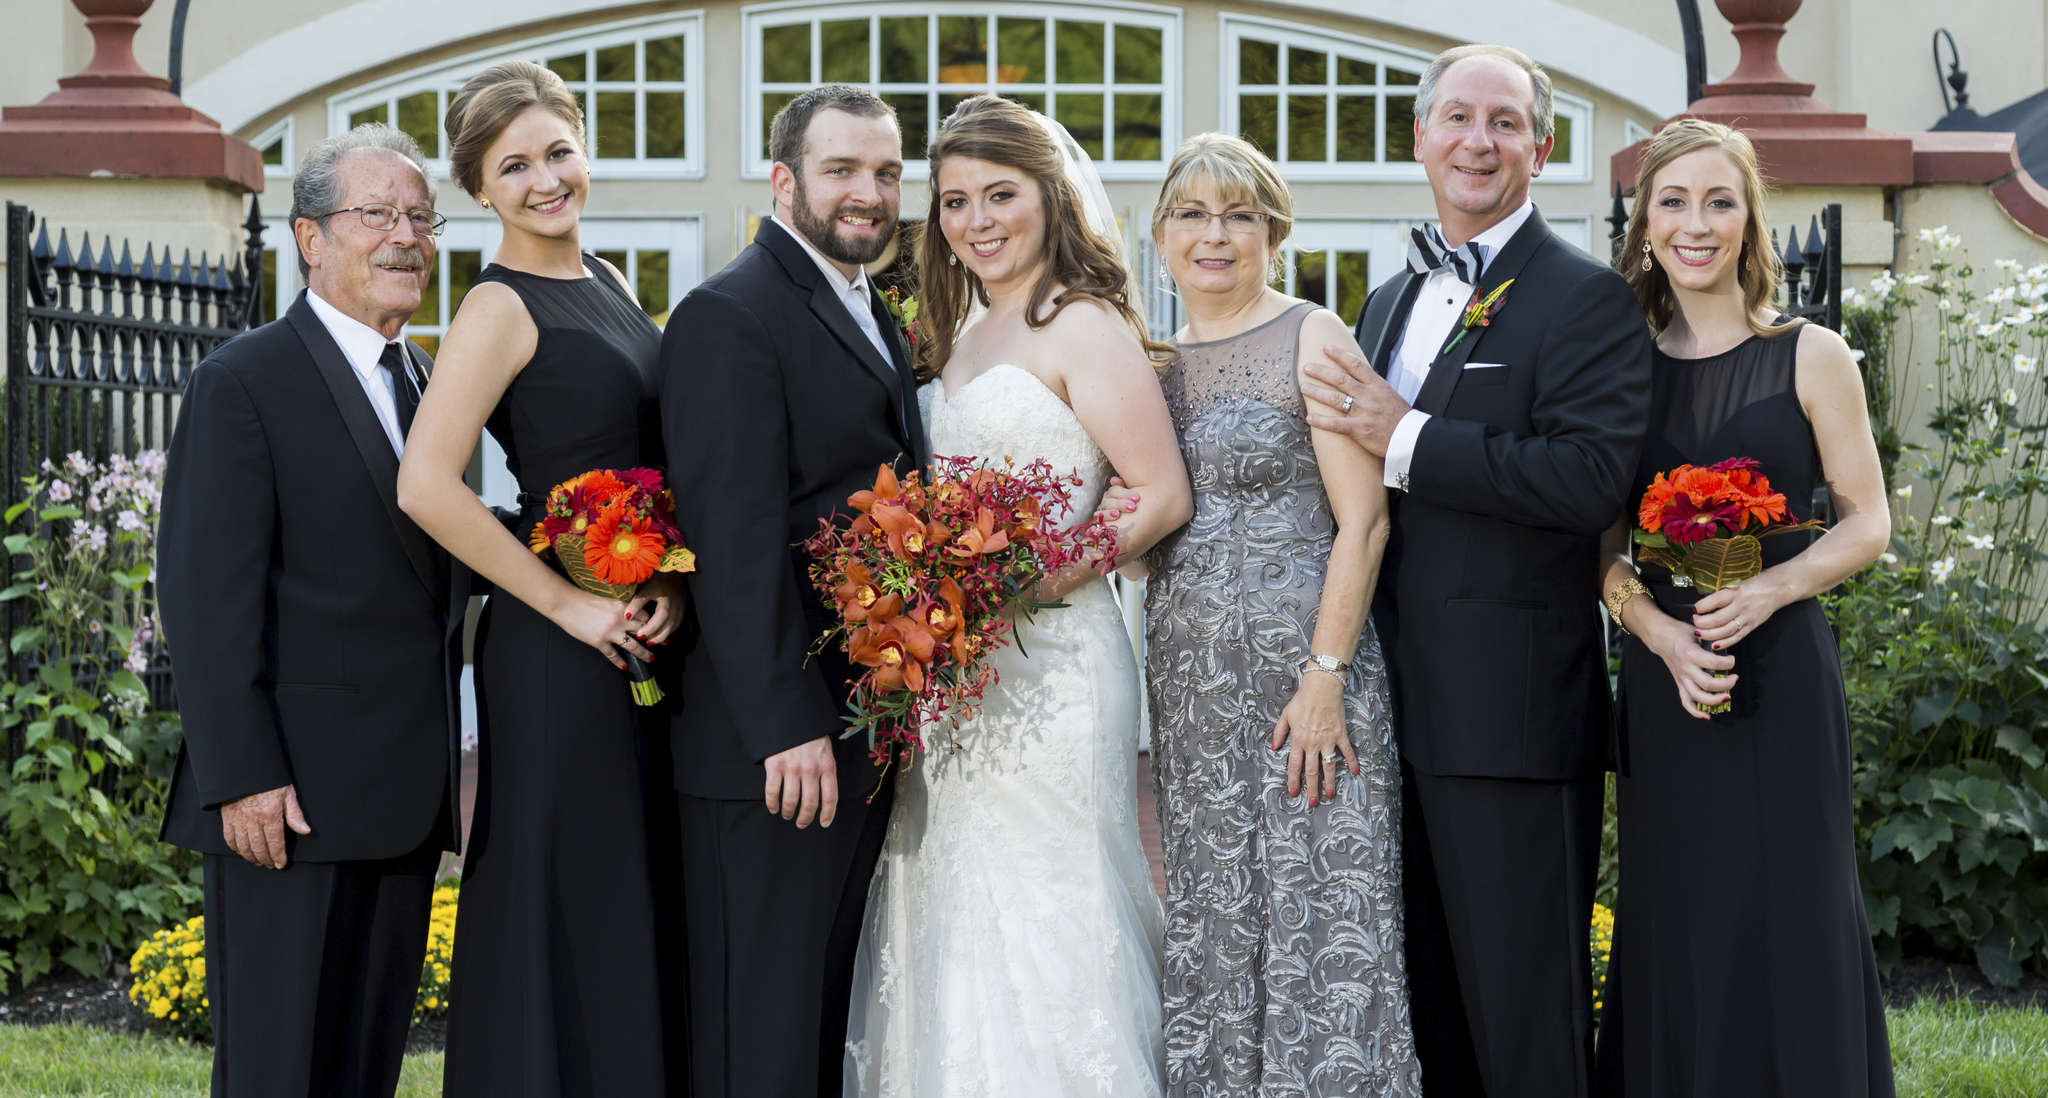 Family of the bride: (from left) pop-pop Giuseppe Macolino; Allison Macolino; newlyweds Michael Kane and Christine Macolino; mother and father of the bride, Majella and Paul Macolino; and Lauren Macolino.